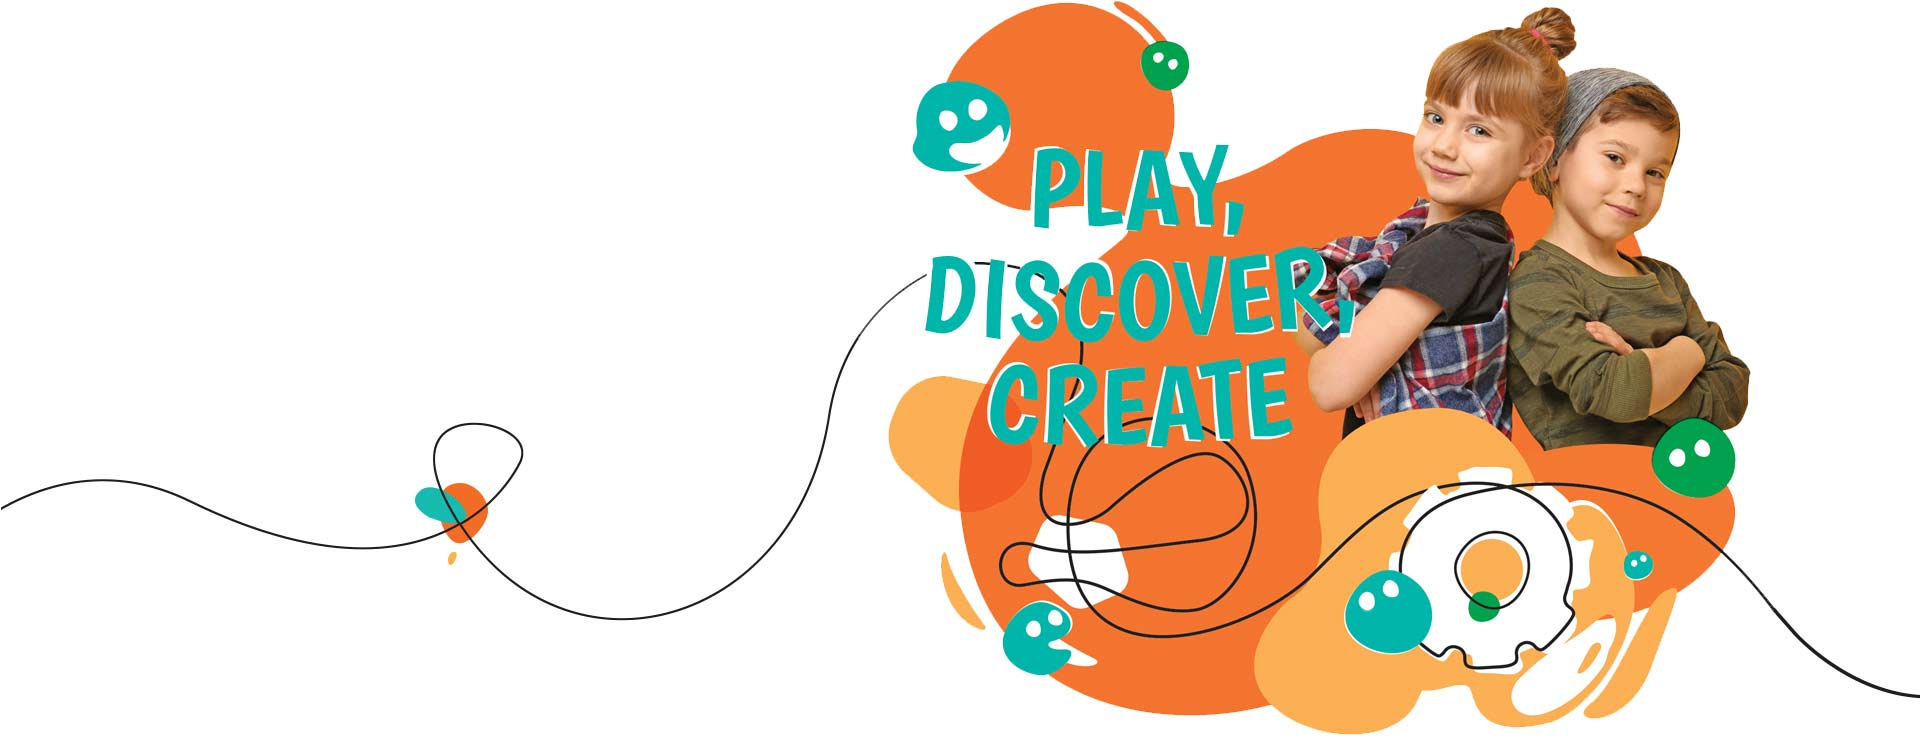 play discover create